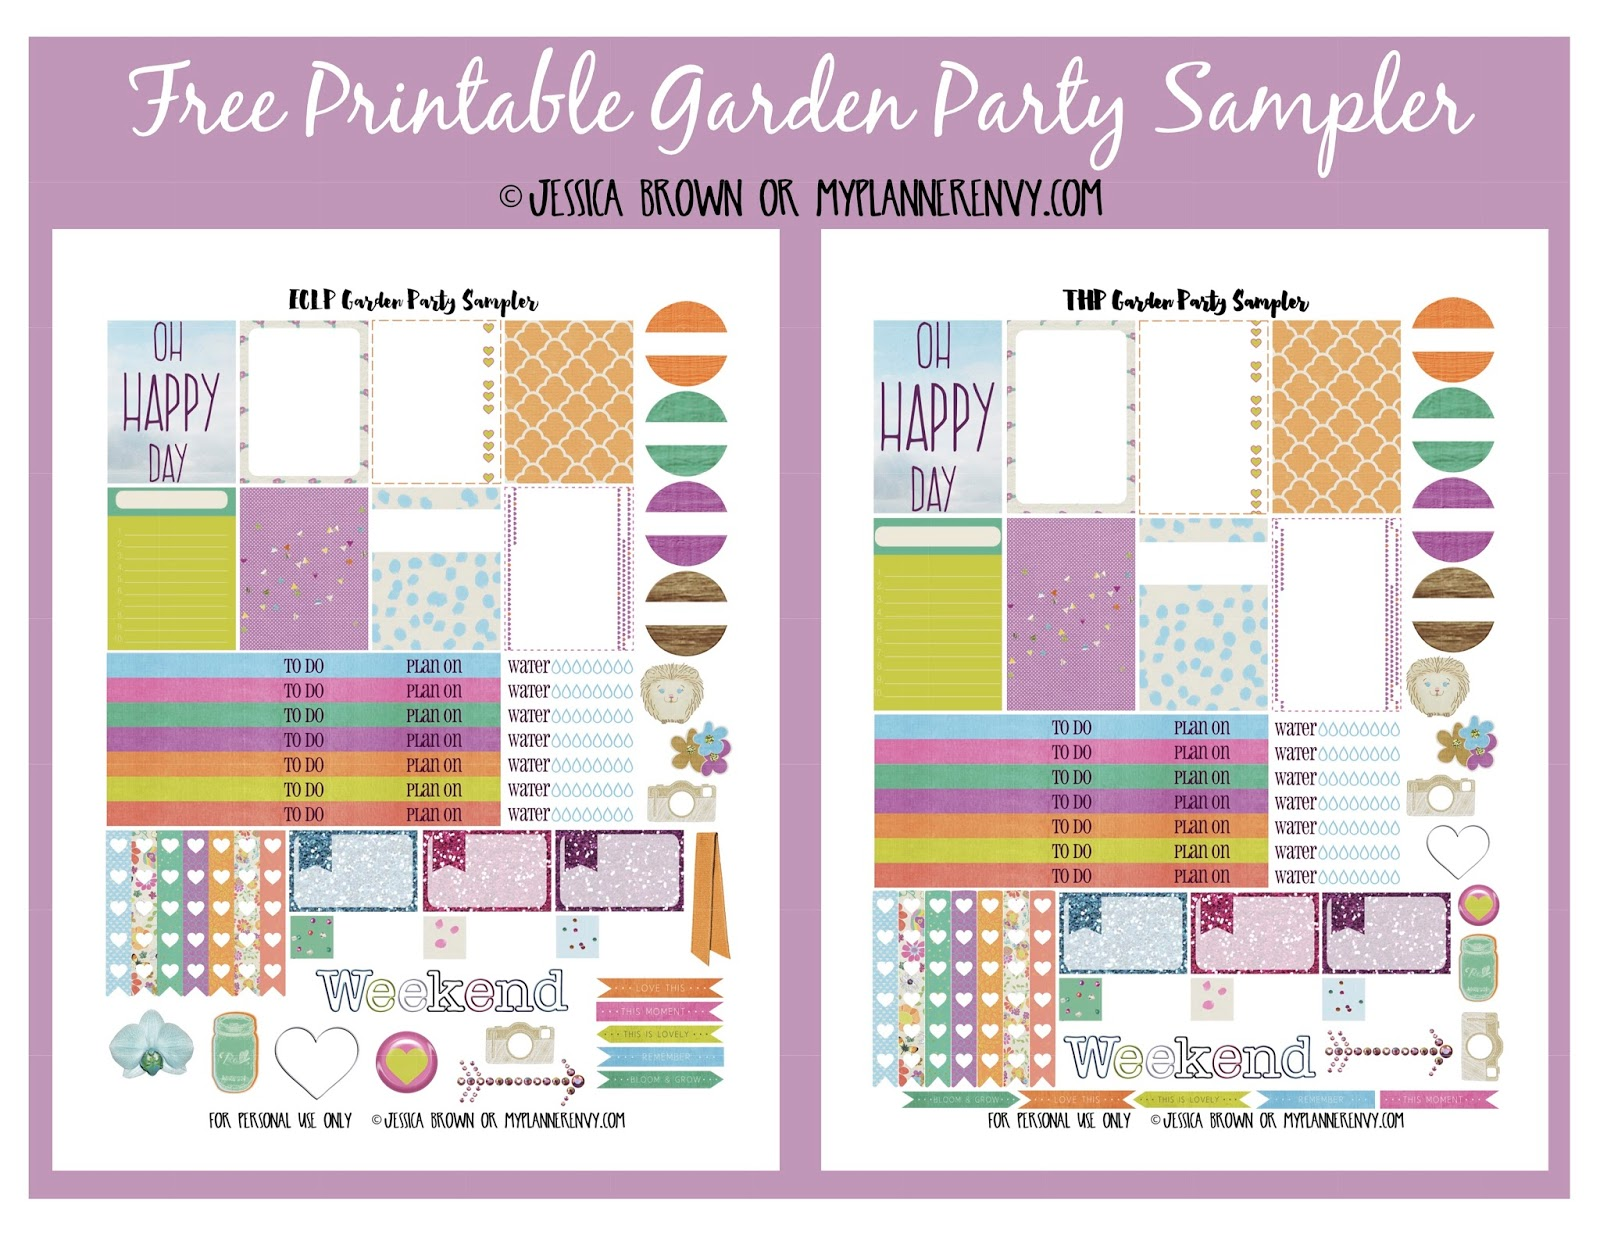 FREE Printable Garden Planner and Food Preservation Journal